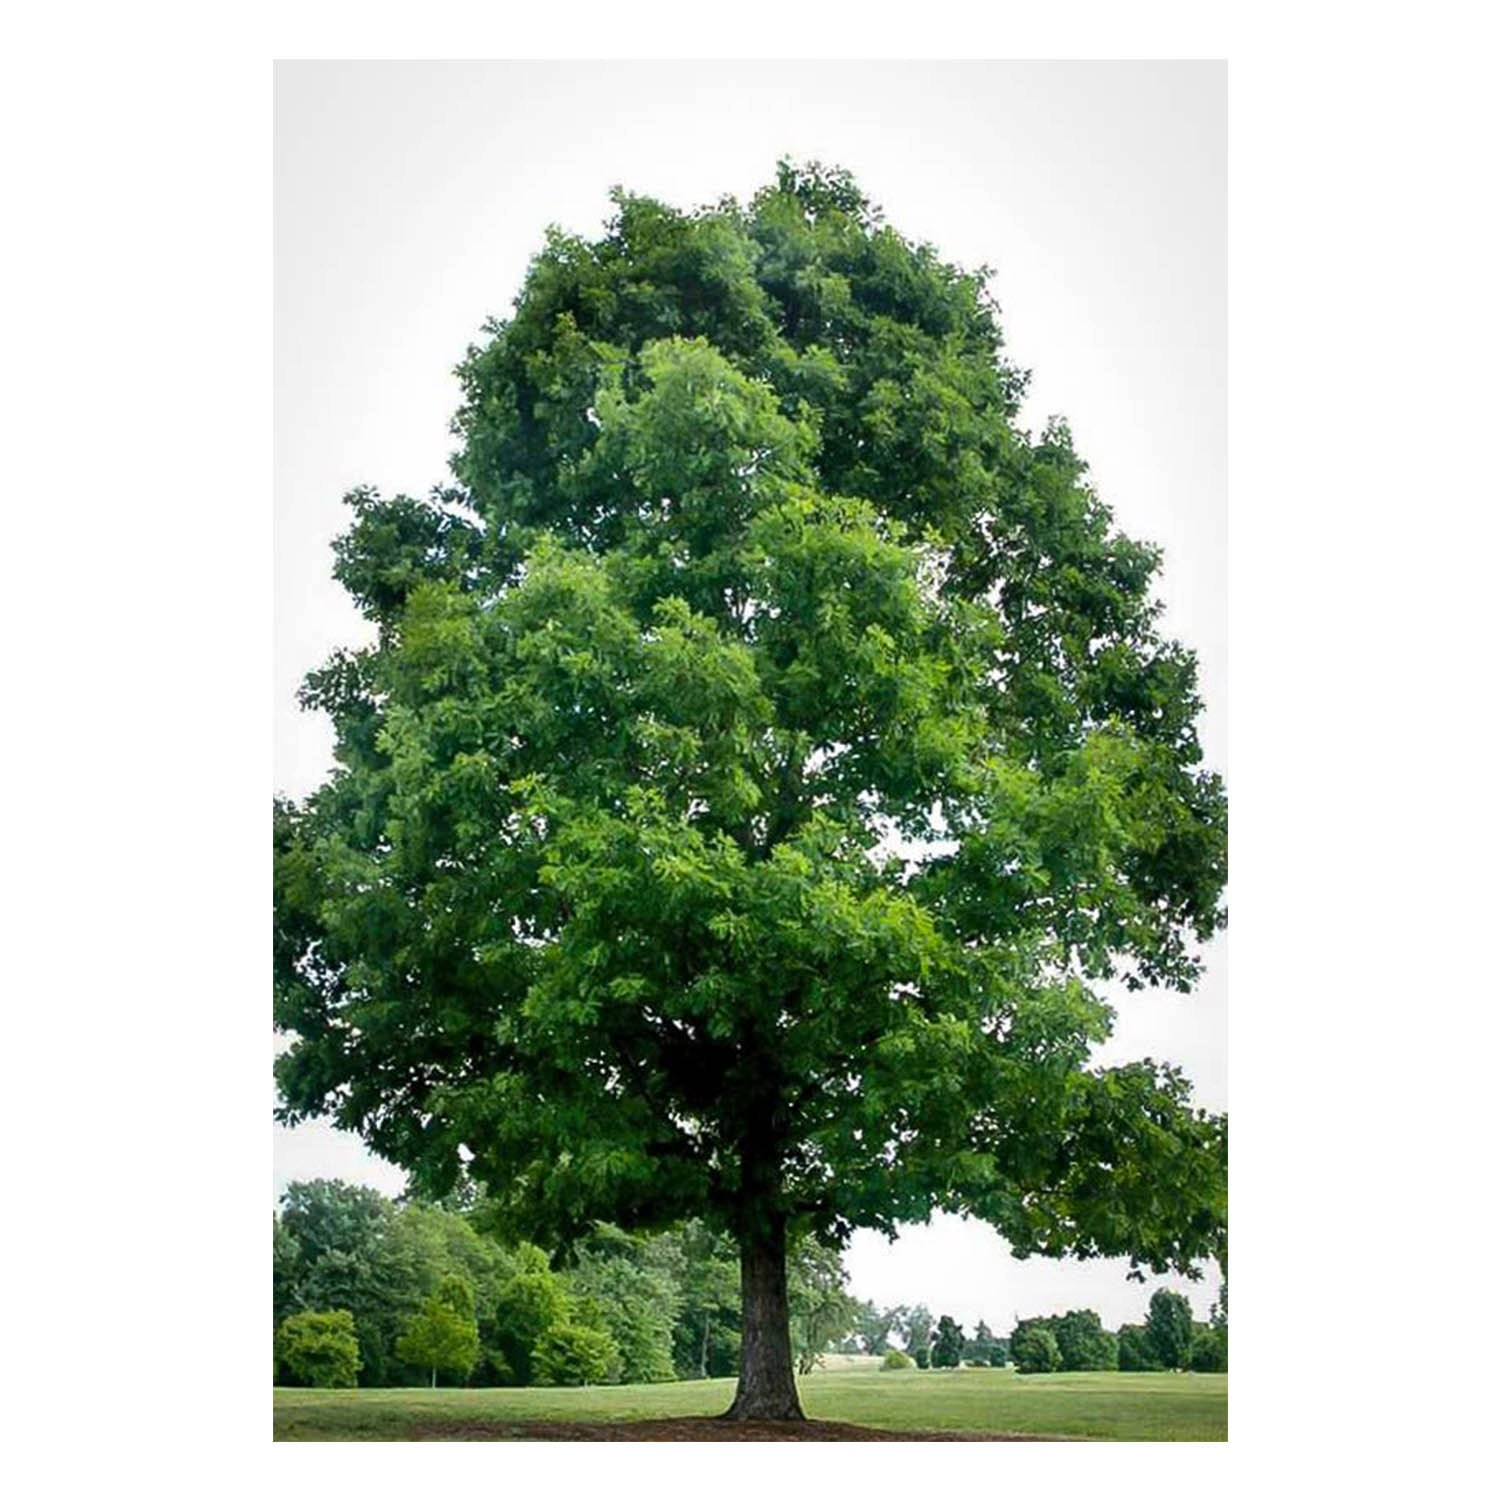 White Oak Tree Quercus alba 1 Gallon Potted Plant Healthy